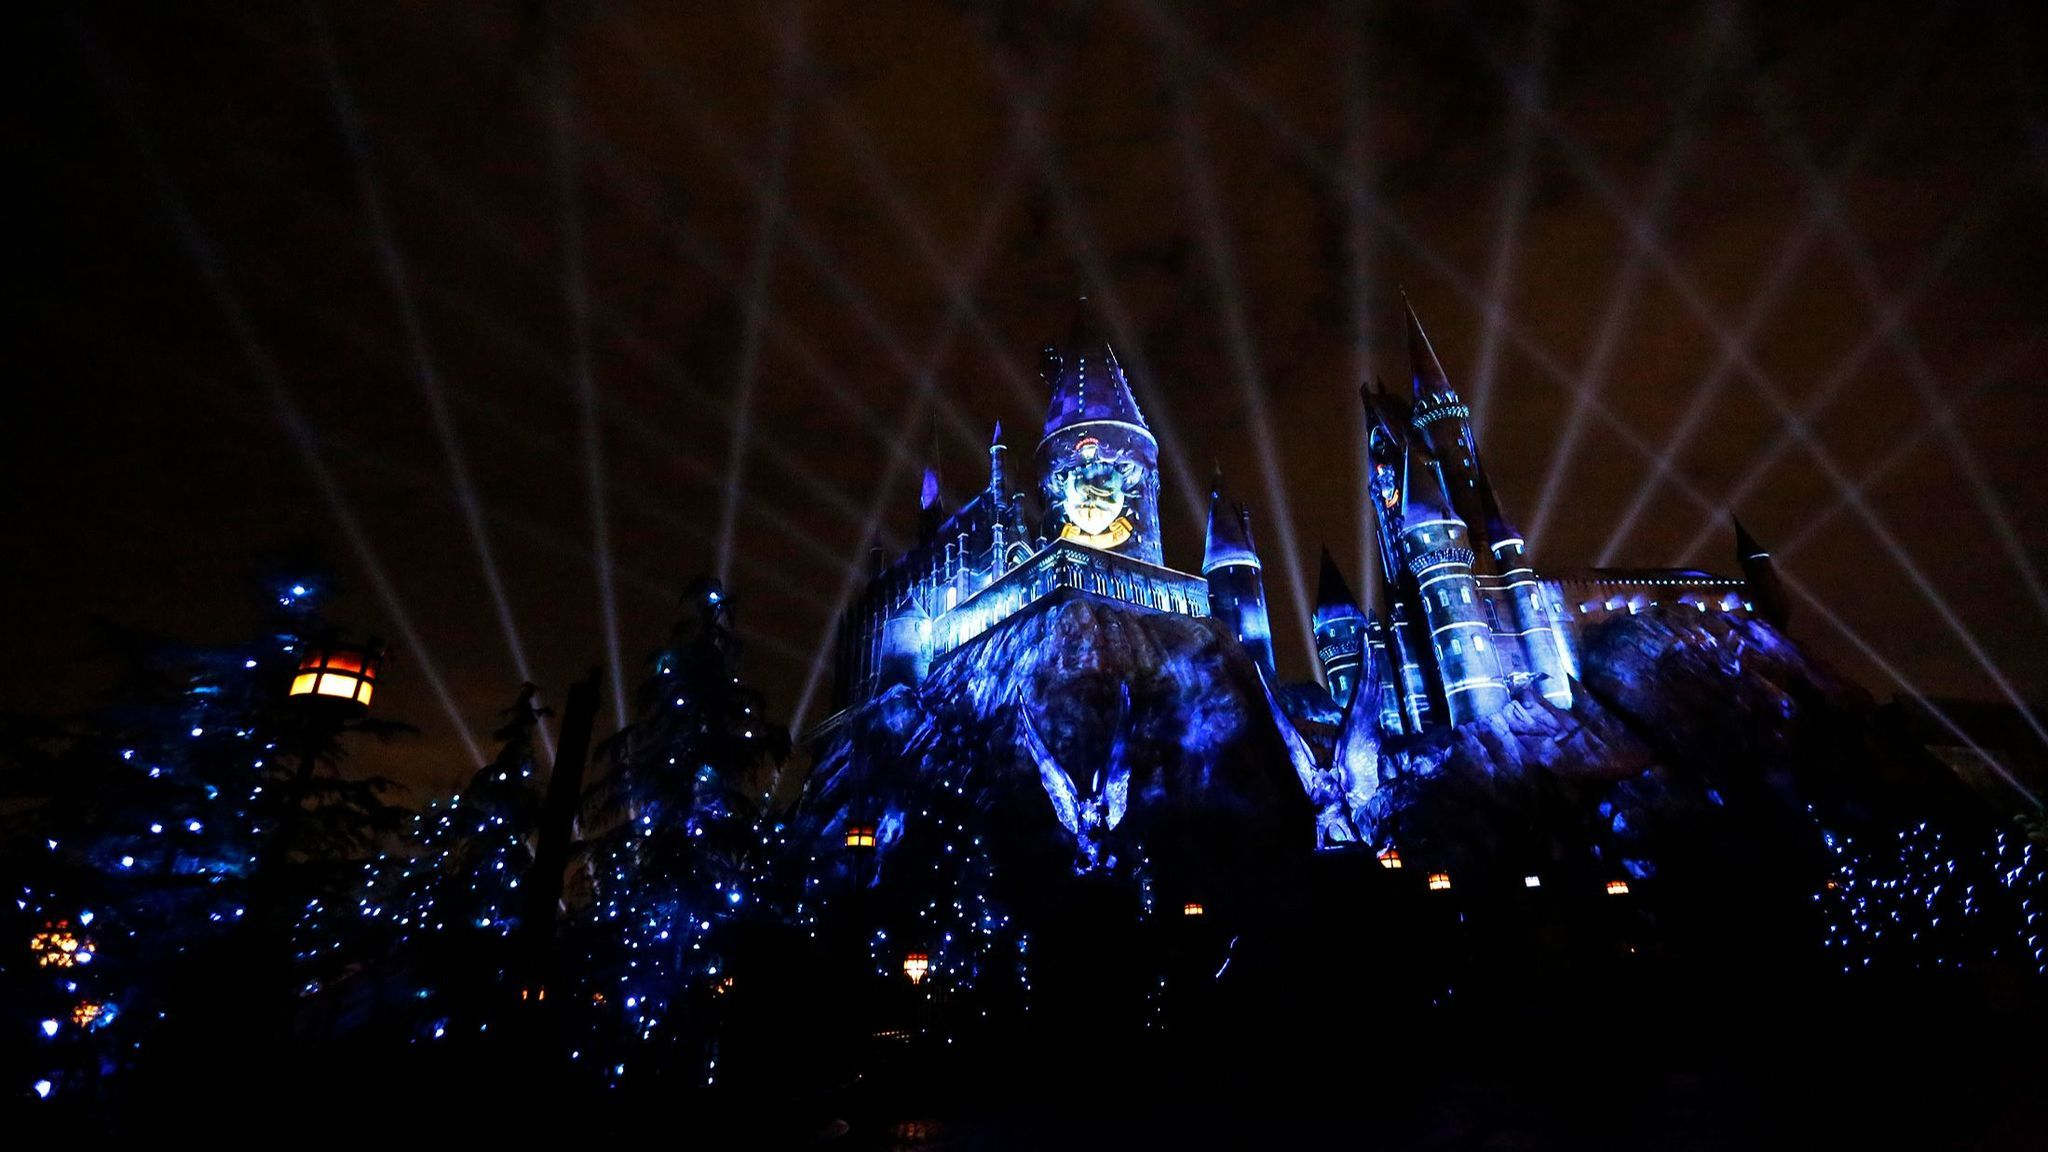 Nighttime light show coming to Harry Potter land at Universal Studios Hollywood